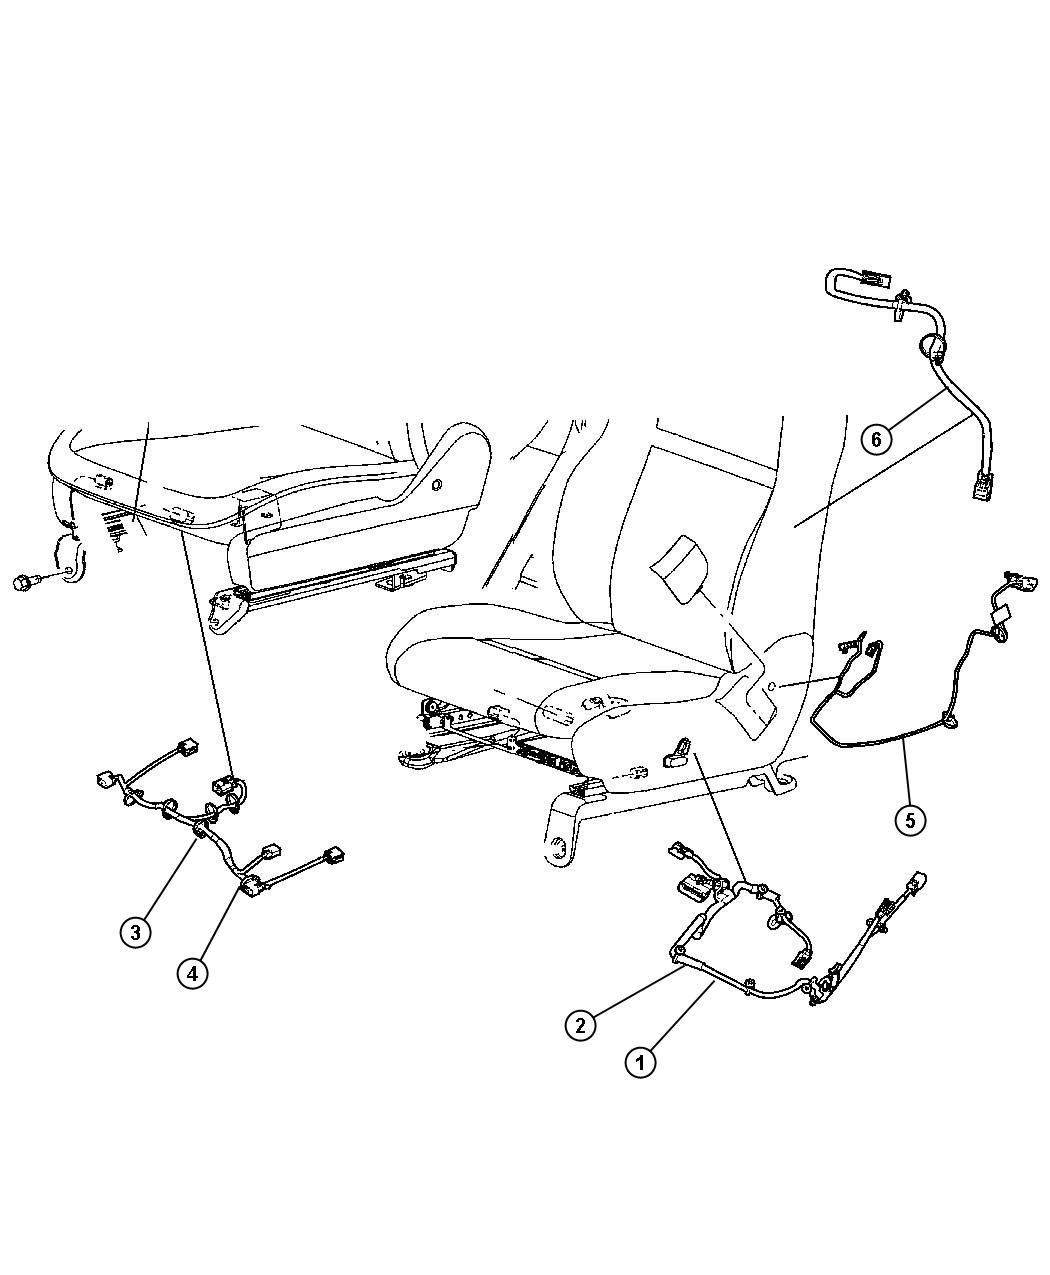 Chrysler Town & Country Wiring. Seat. 8 way power, lumbar